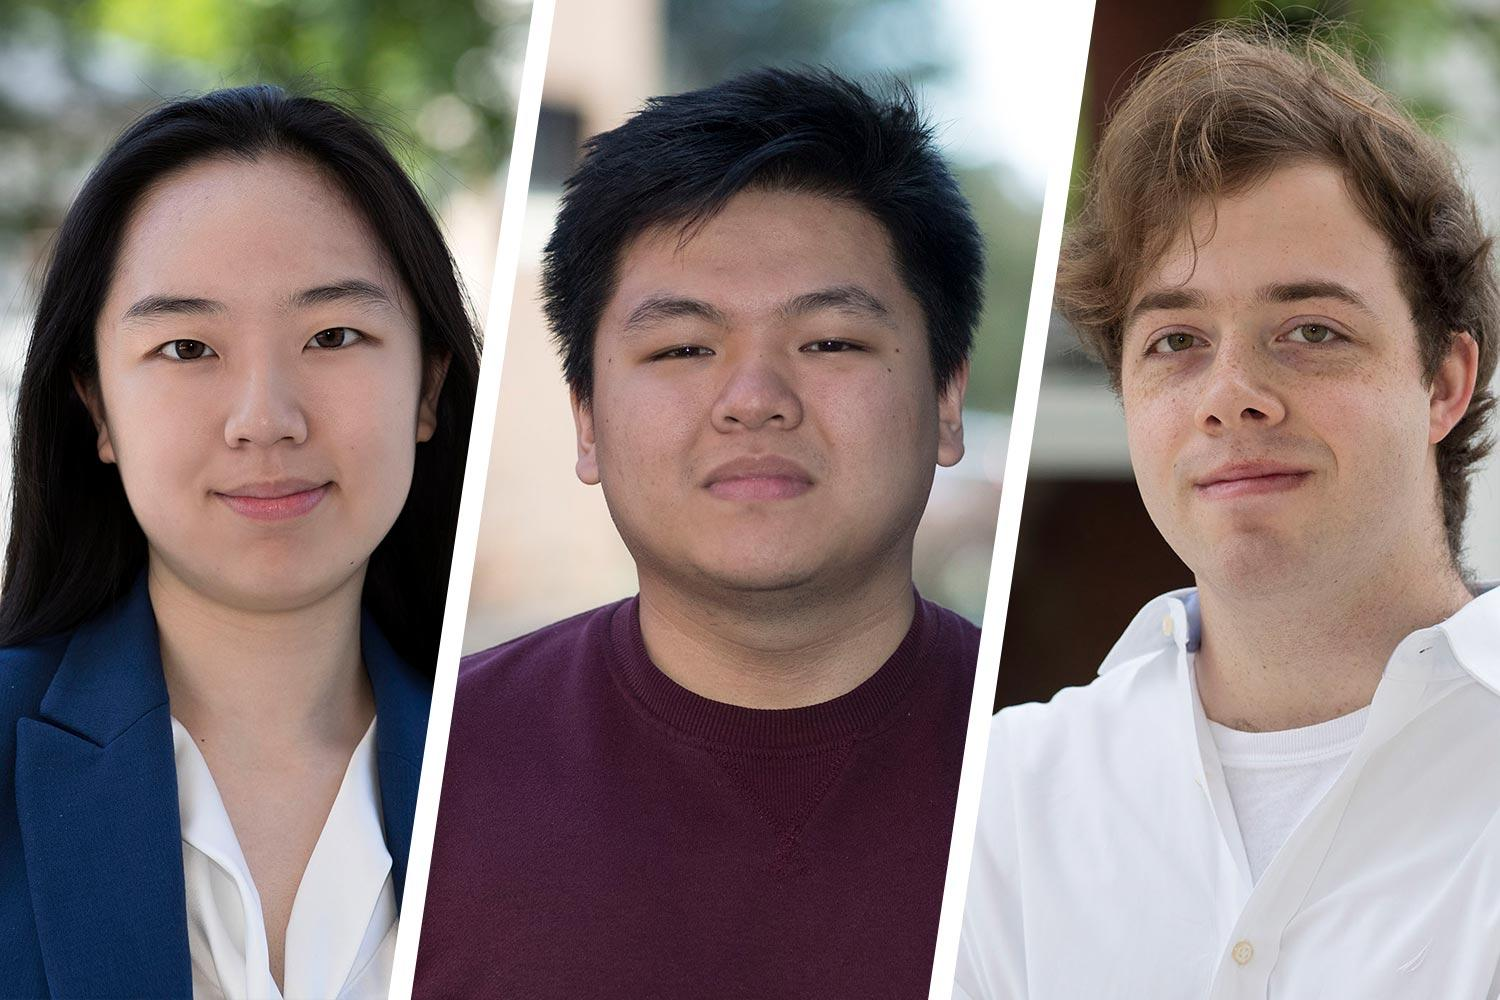 From left, Chelsea Li, Jonathan Zheng and Karl Westendorff earned Goldwater Scholarships to support their studies in science and engineering fields.